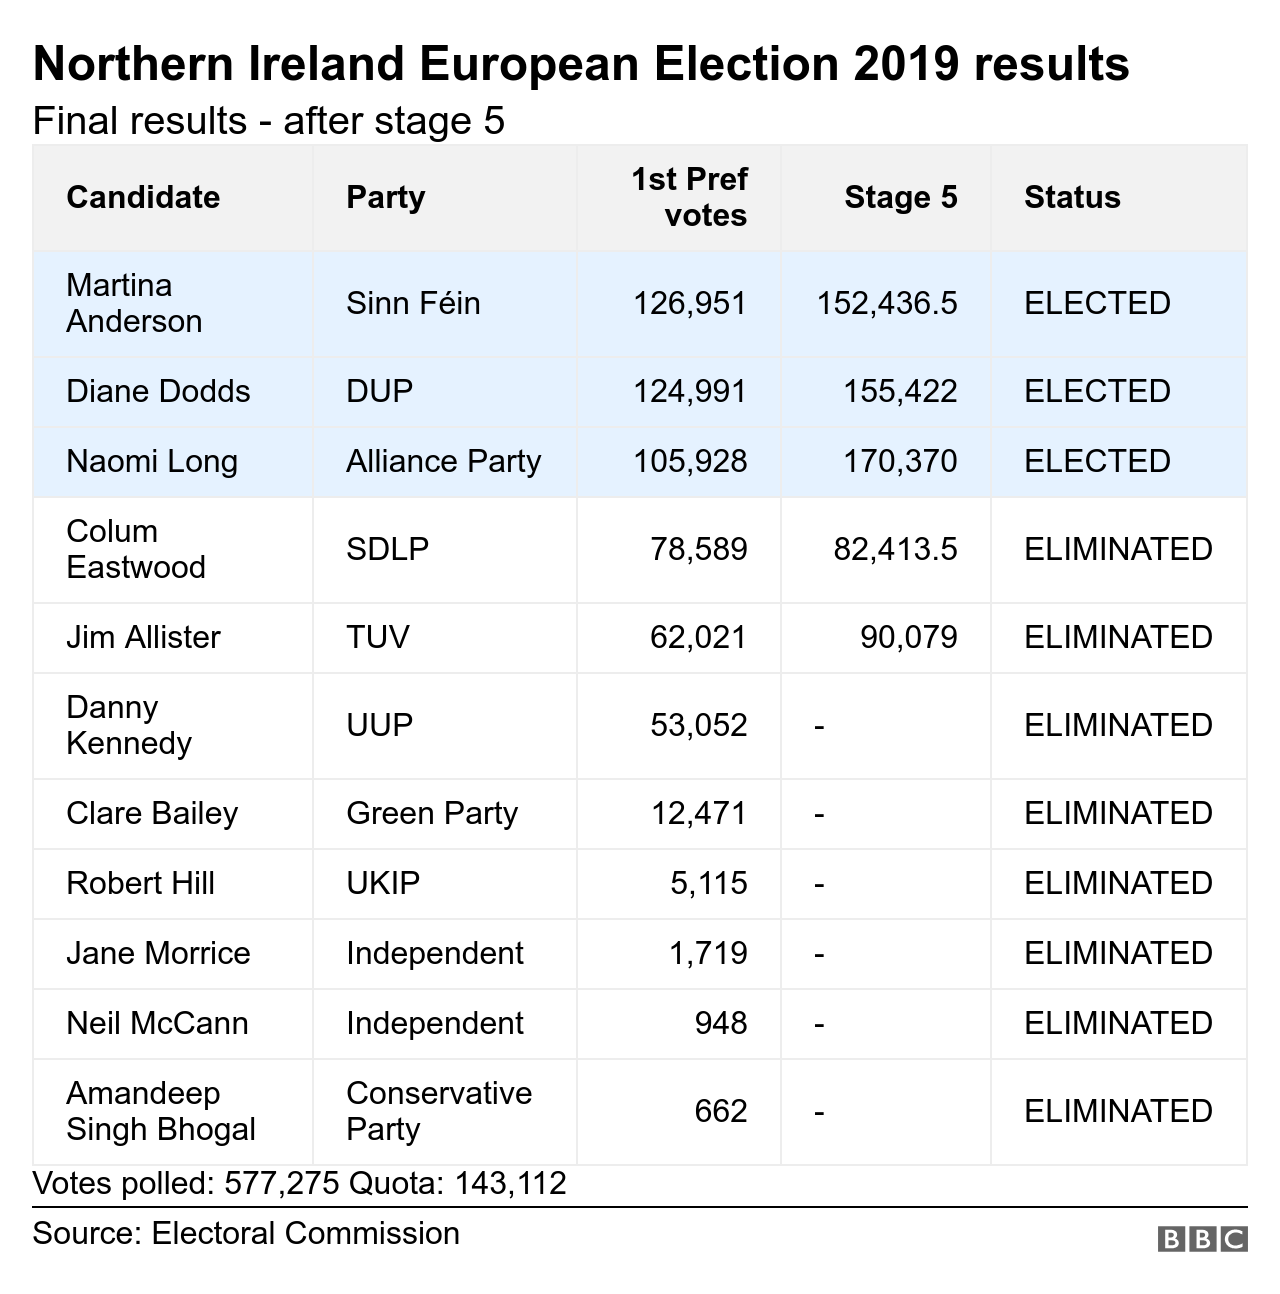 Northern Ireland European Election results